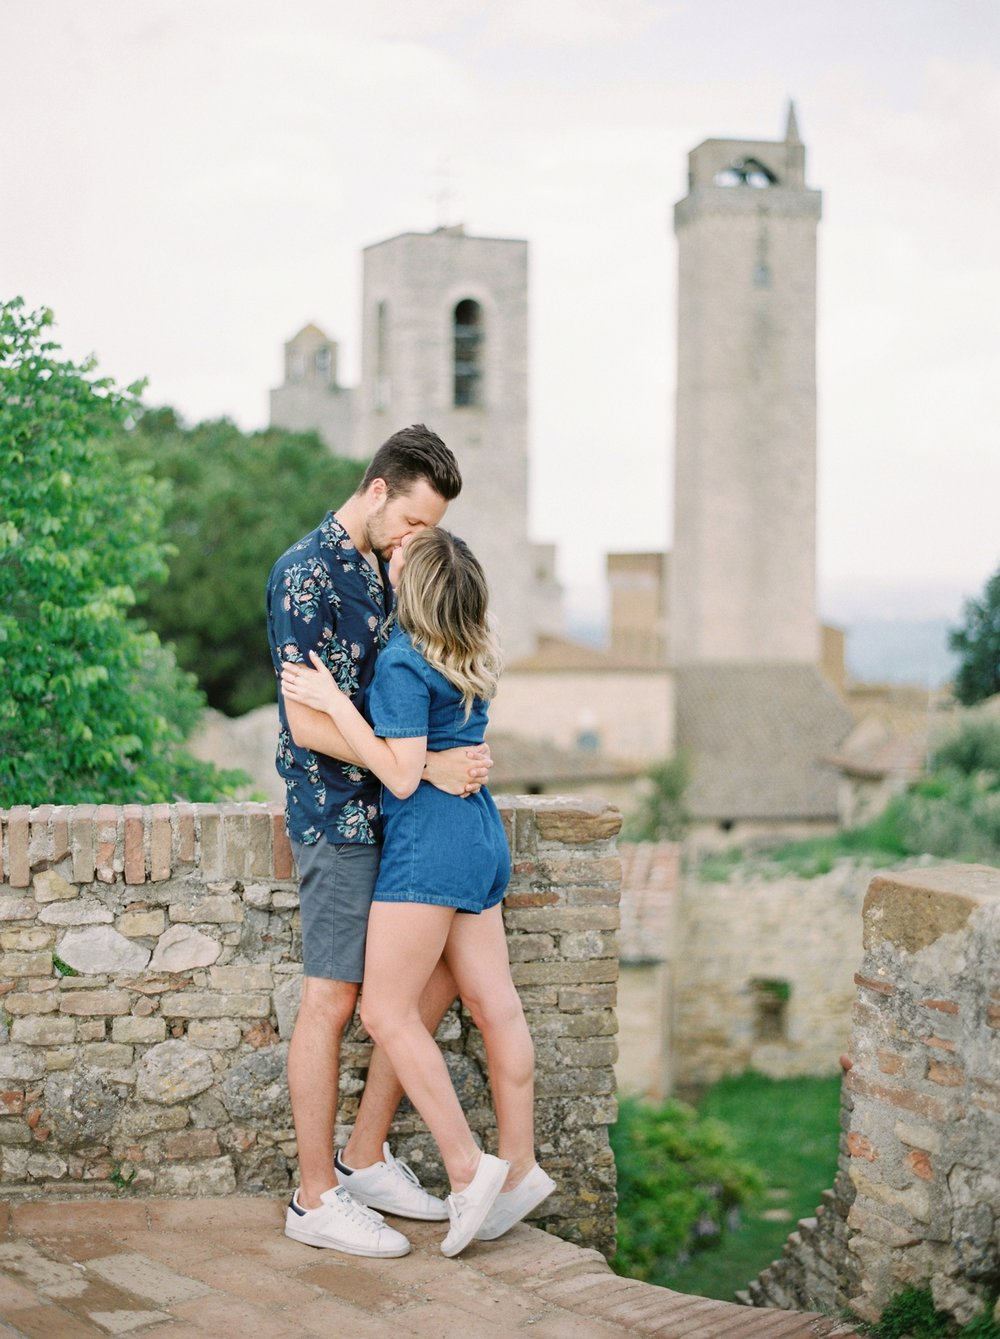 Italy wedding photographers | couples session fashion blogger life set sail | Justine milton fine art film photographer